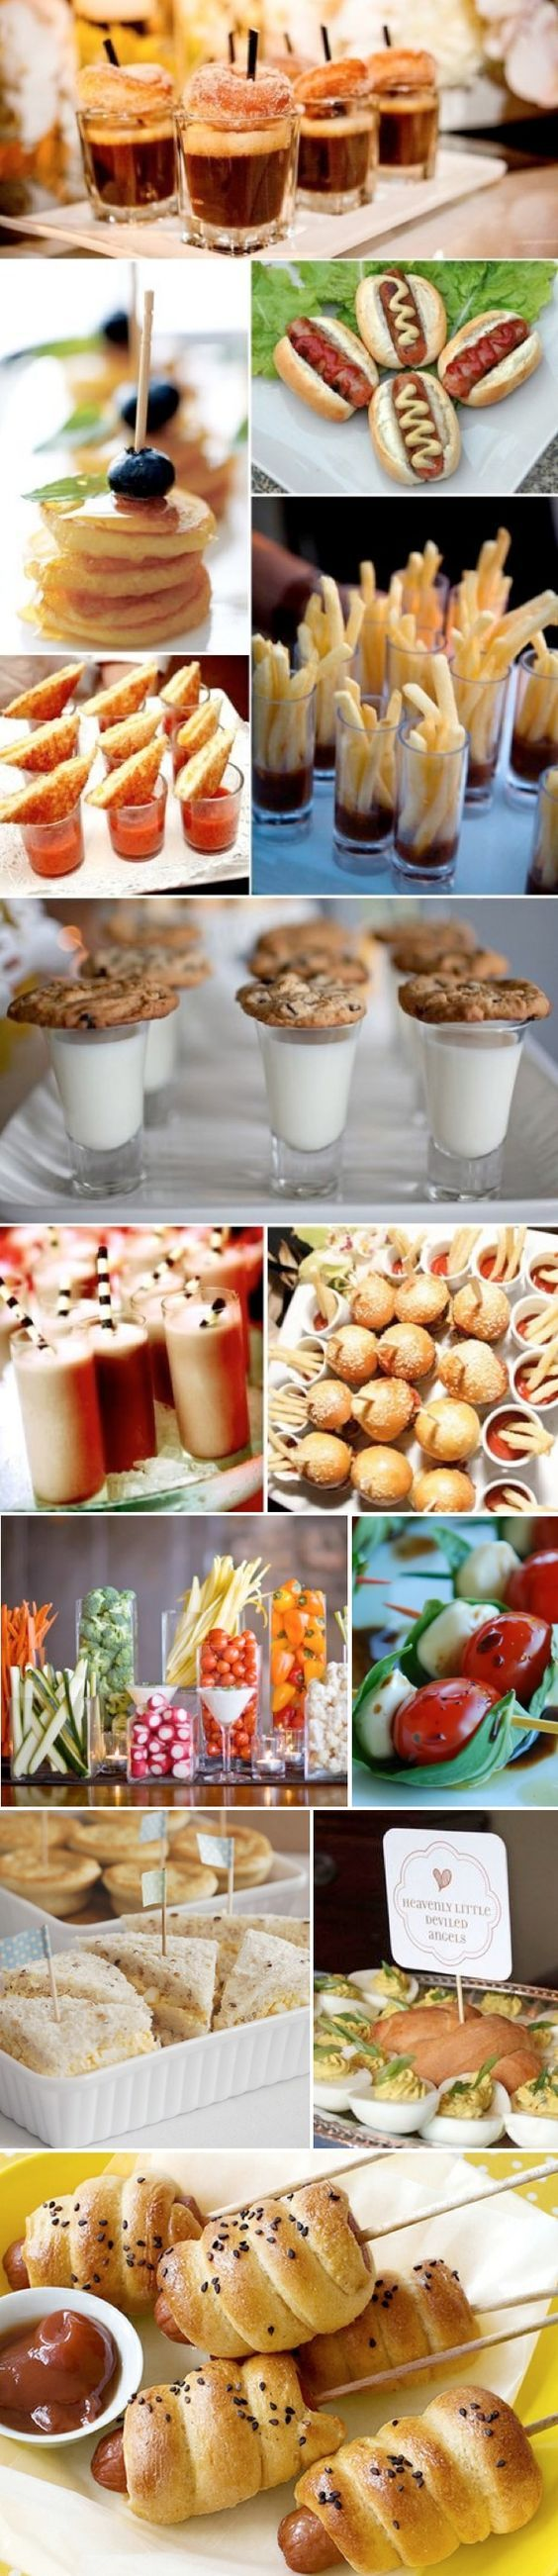 Finger foods {perfect for a party}. AMG tiny wiener dogs in tiny buns. Not in a dirty way. Or maybe it is.: